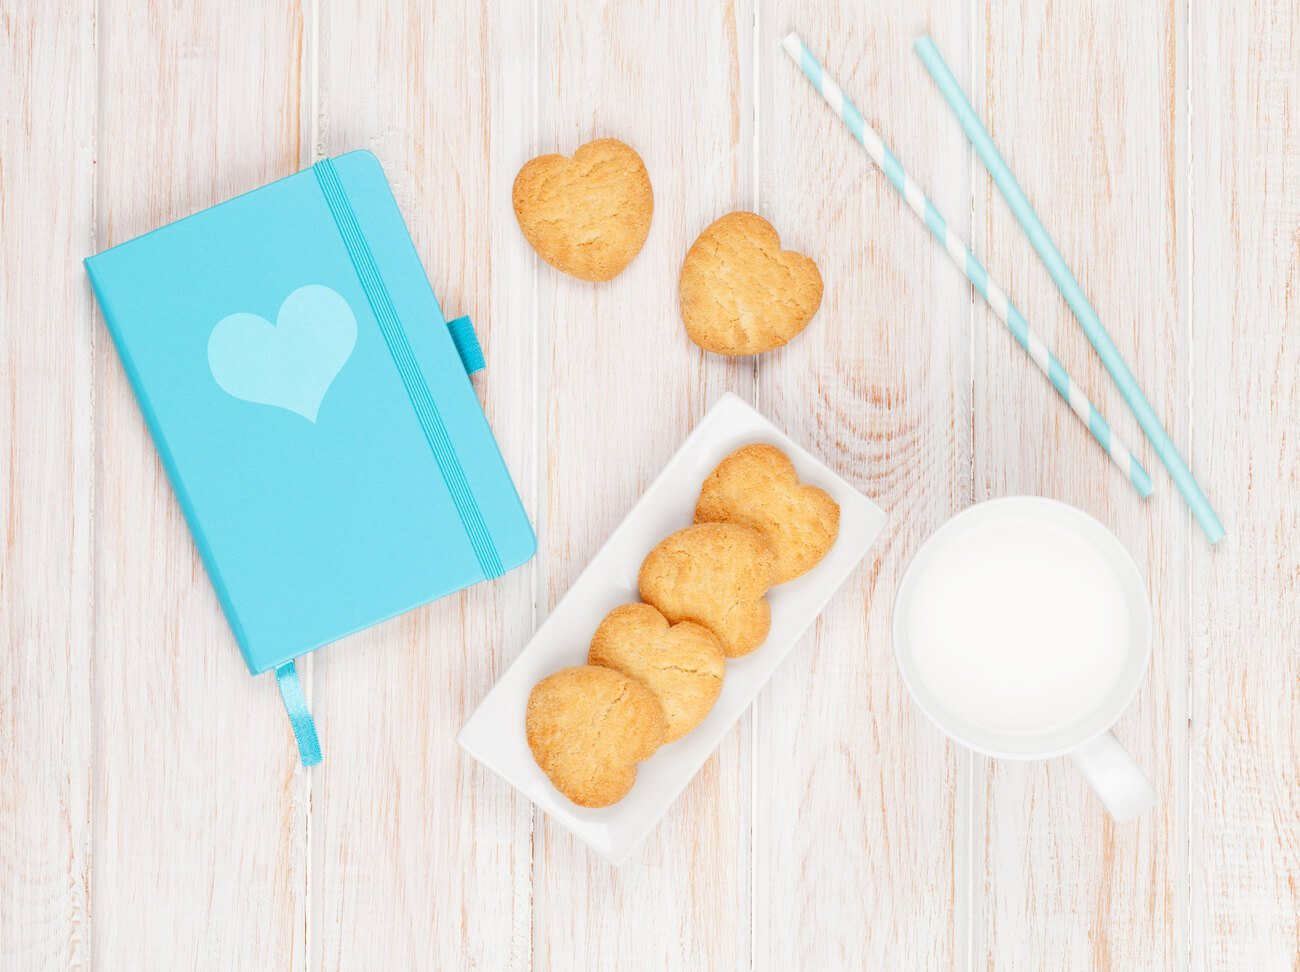 Image shows a cup of milk, some straws, some biscuits and a diary on a table.